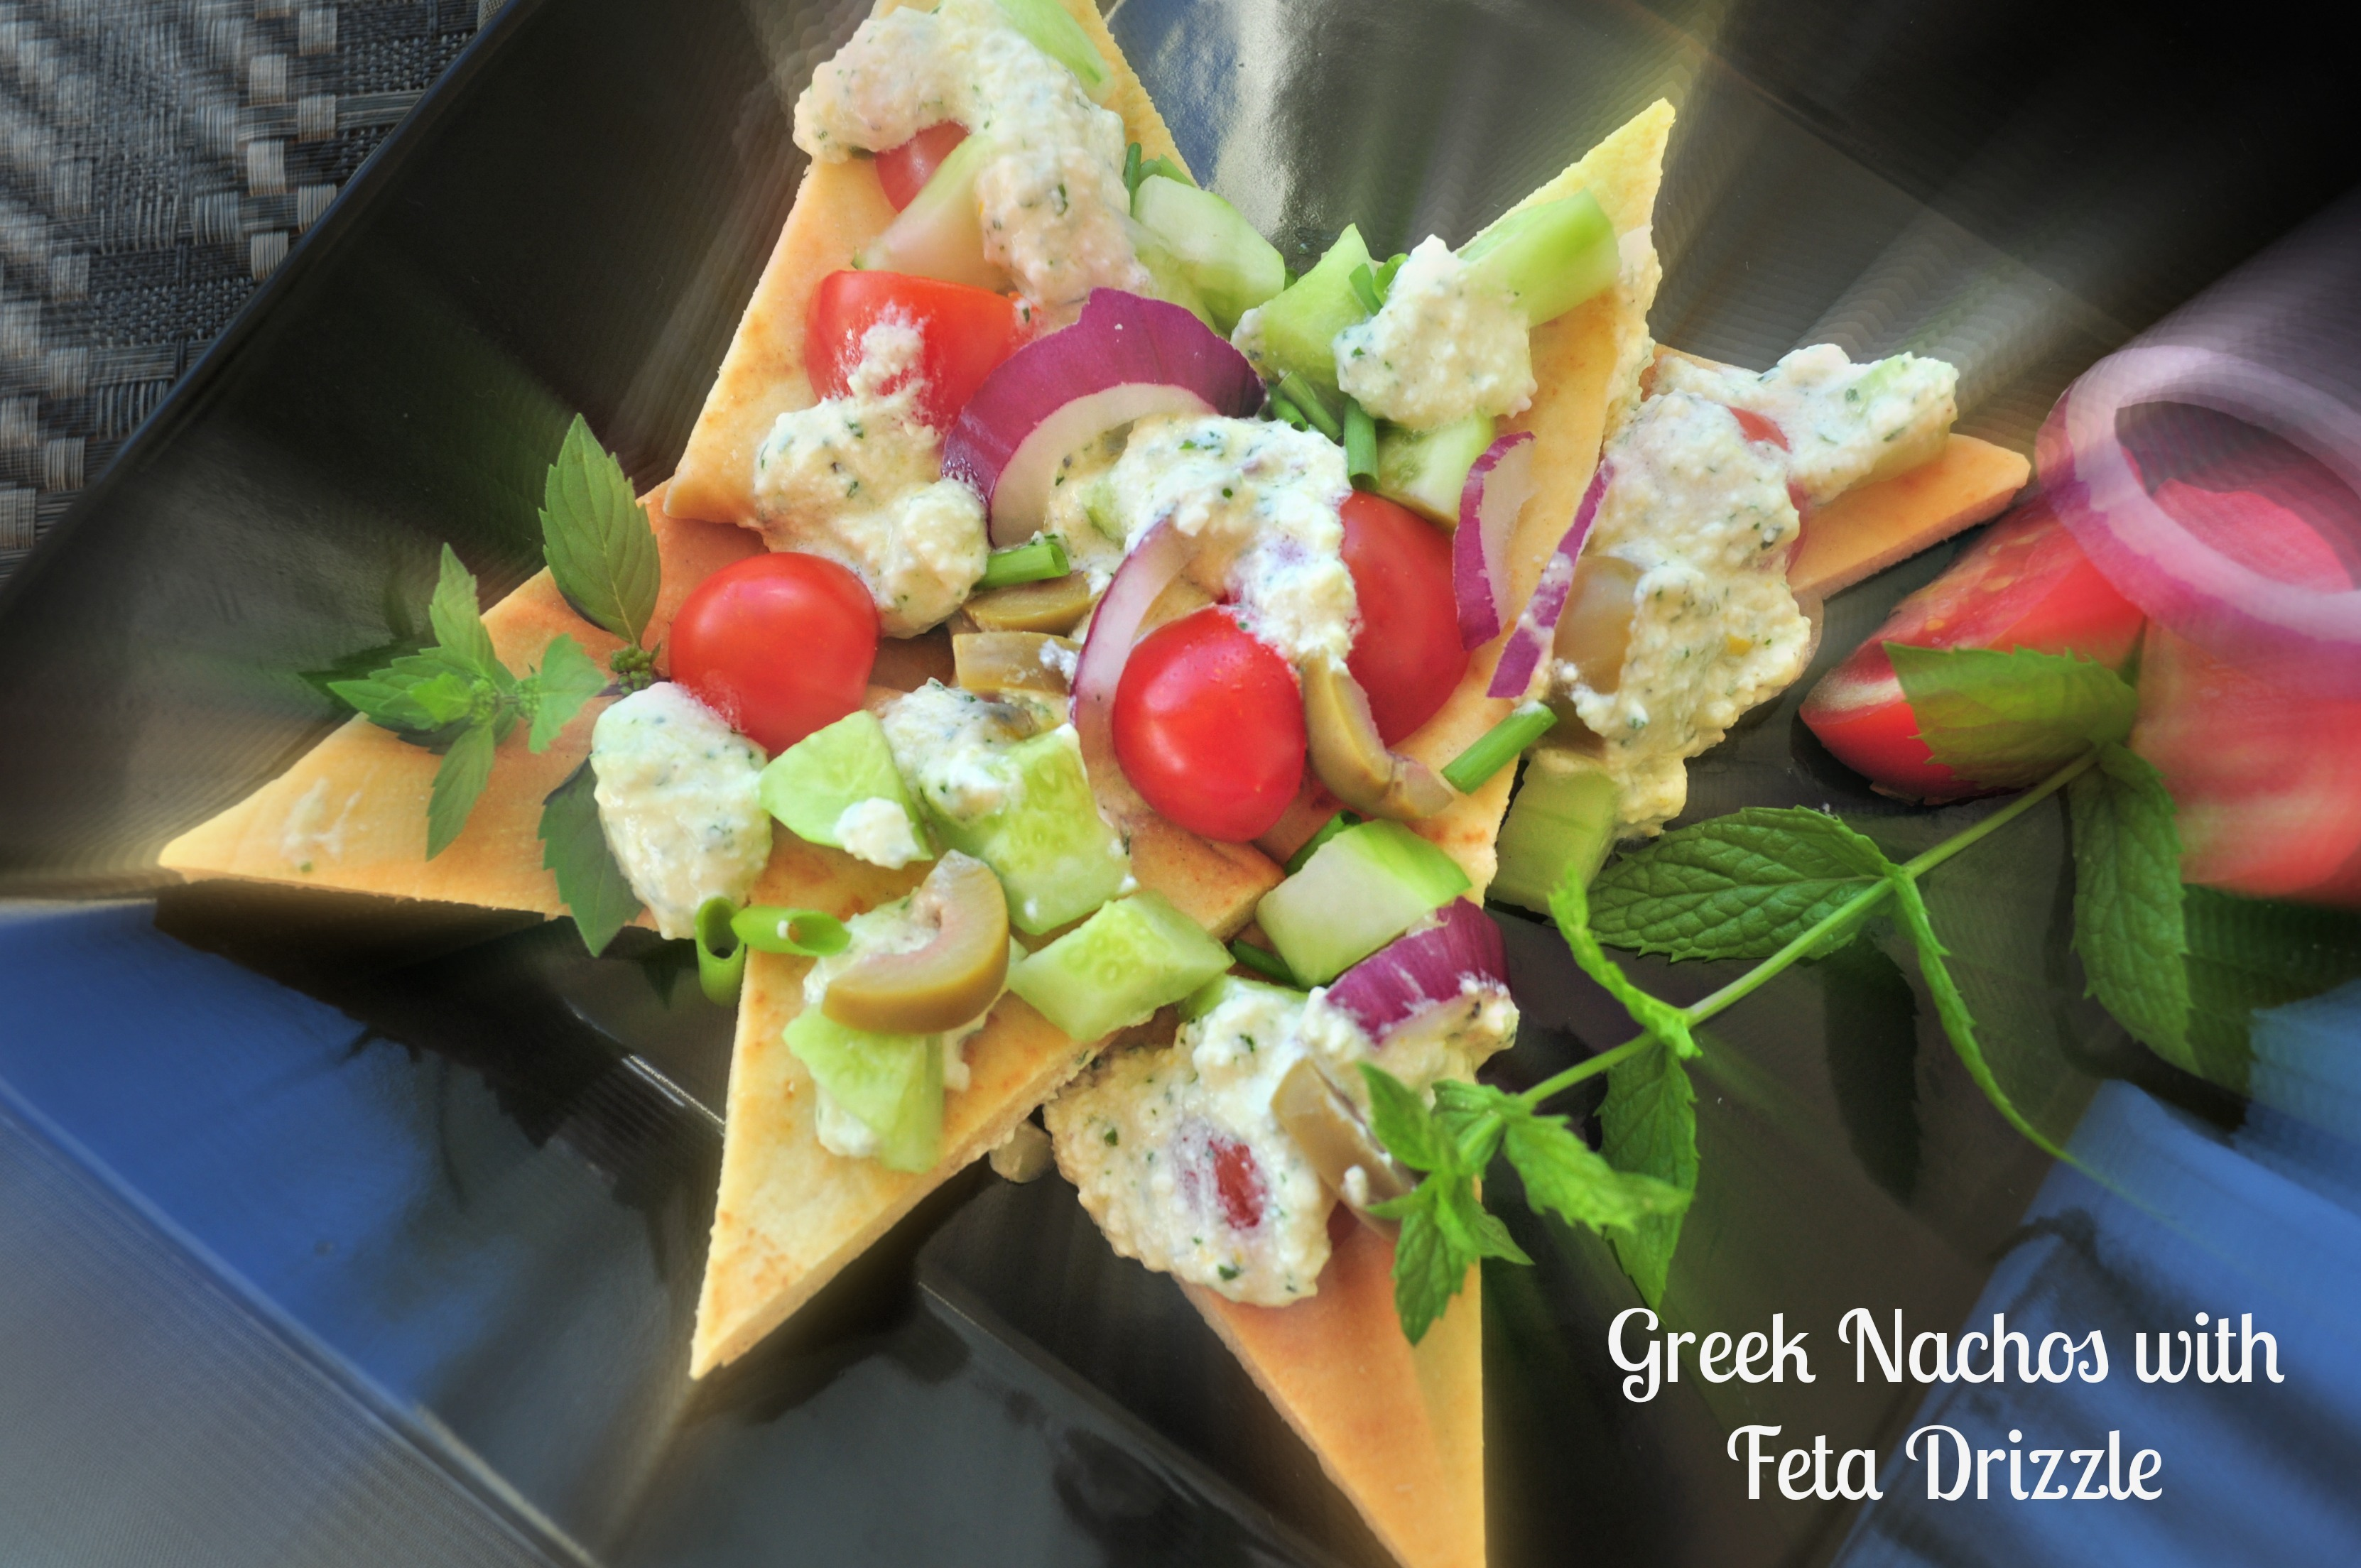 Greek nachos with feta drizzle joinmefordinner as many of you know i participate in the food matters project heres how it works each week one member of the group chooses a recipe from the book forumfinder Images